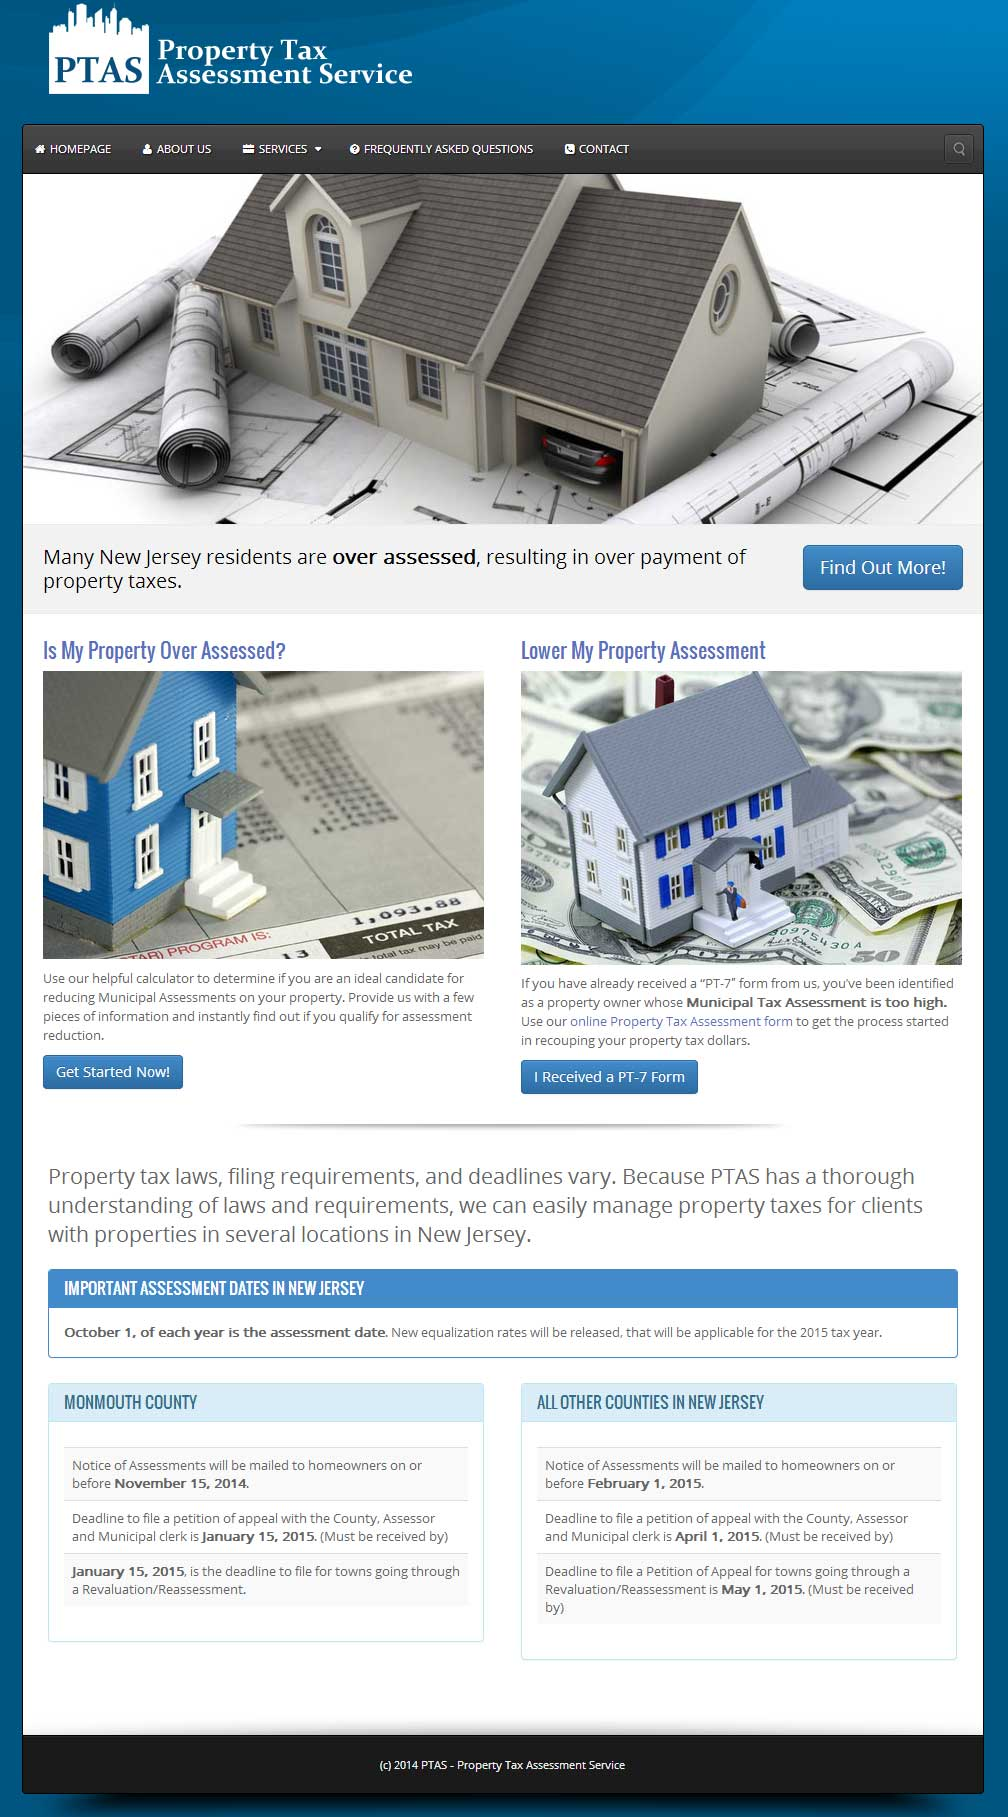 property-tax-assessment-service1